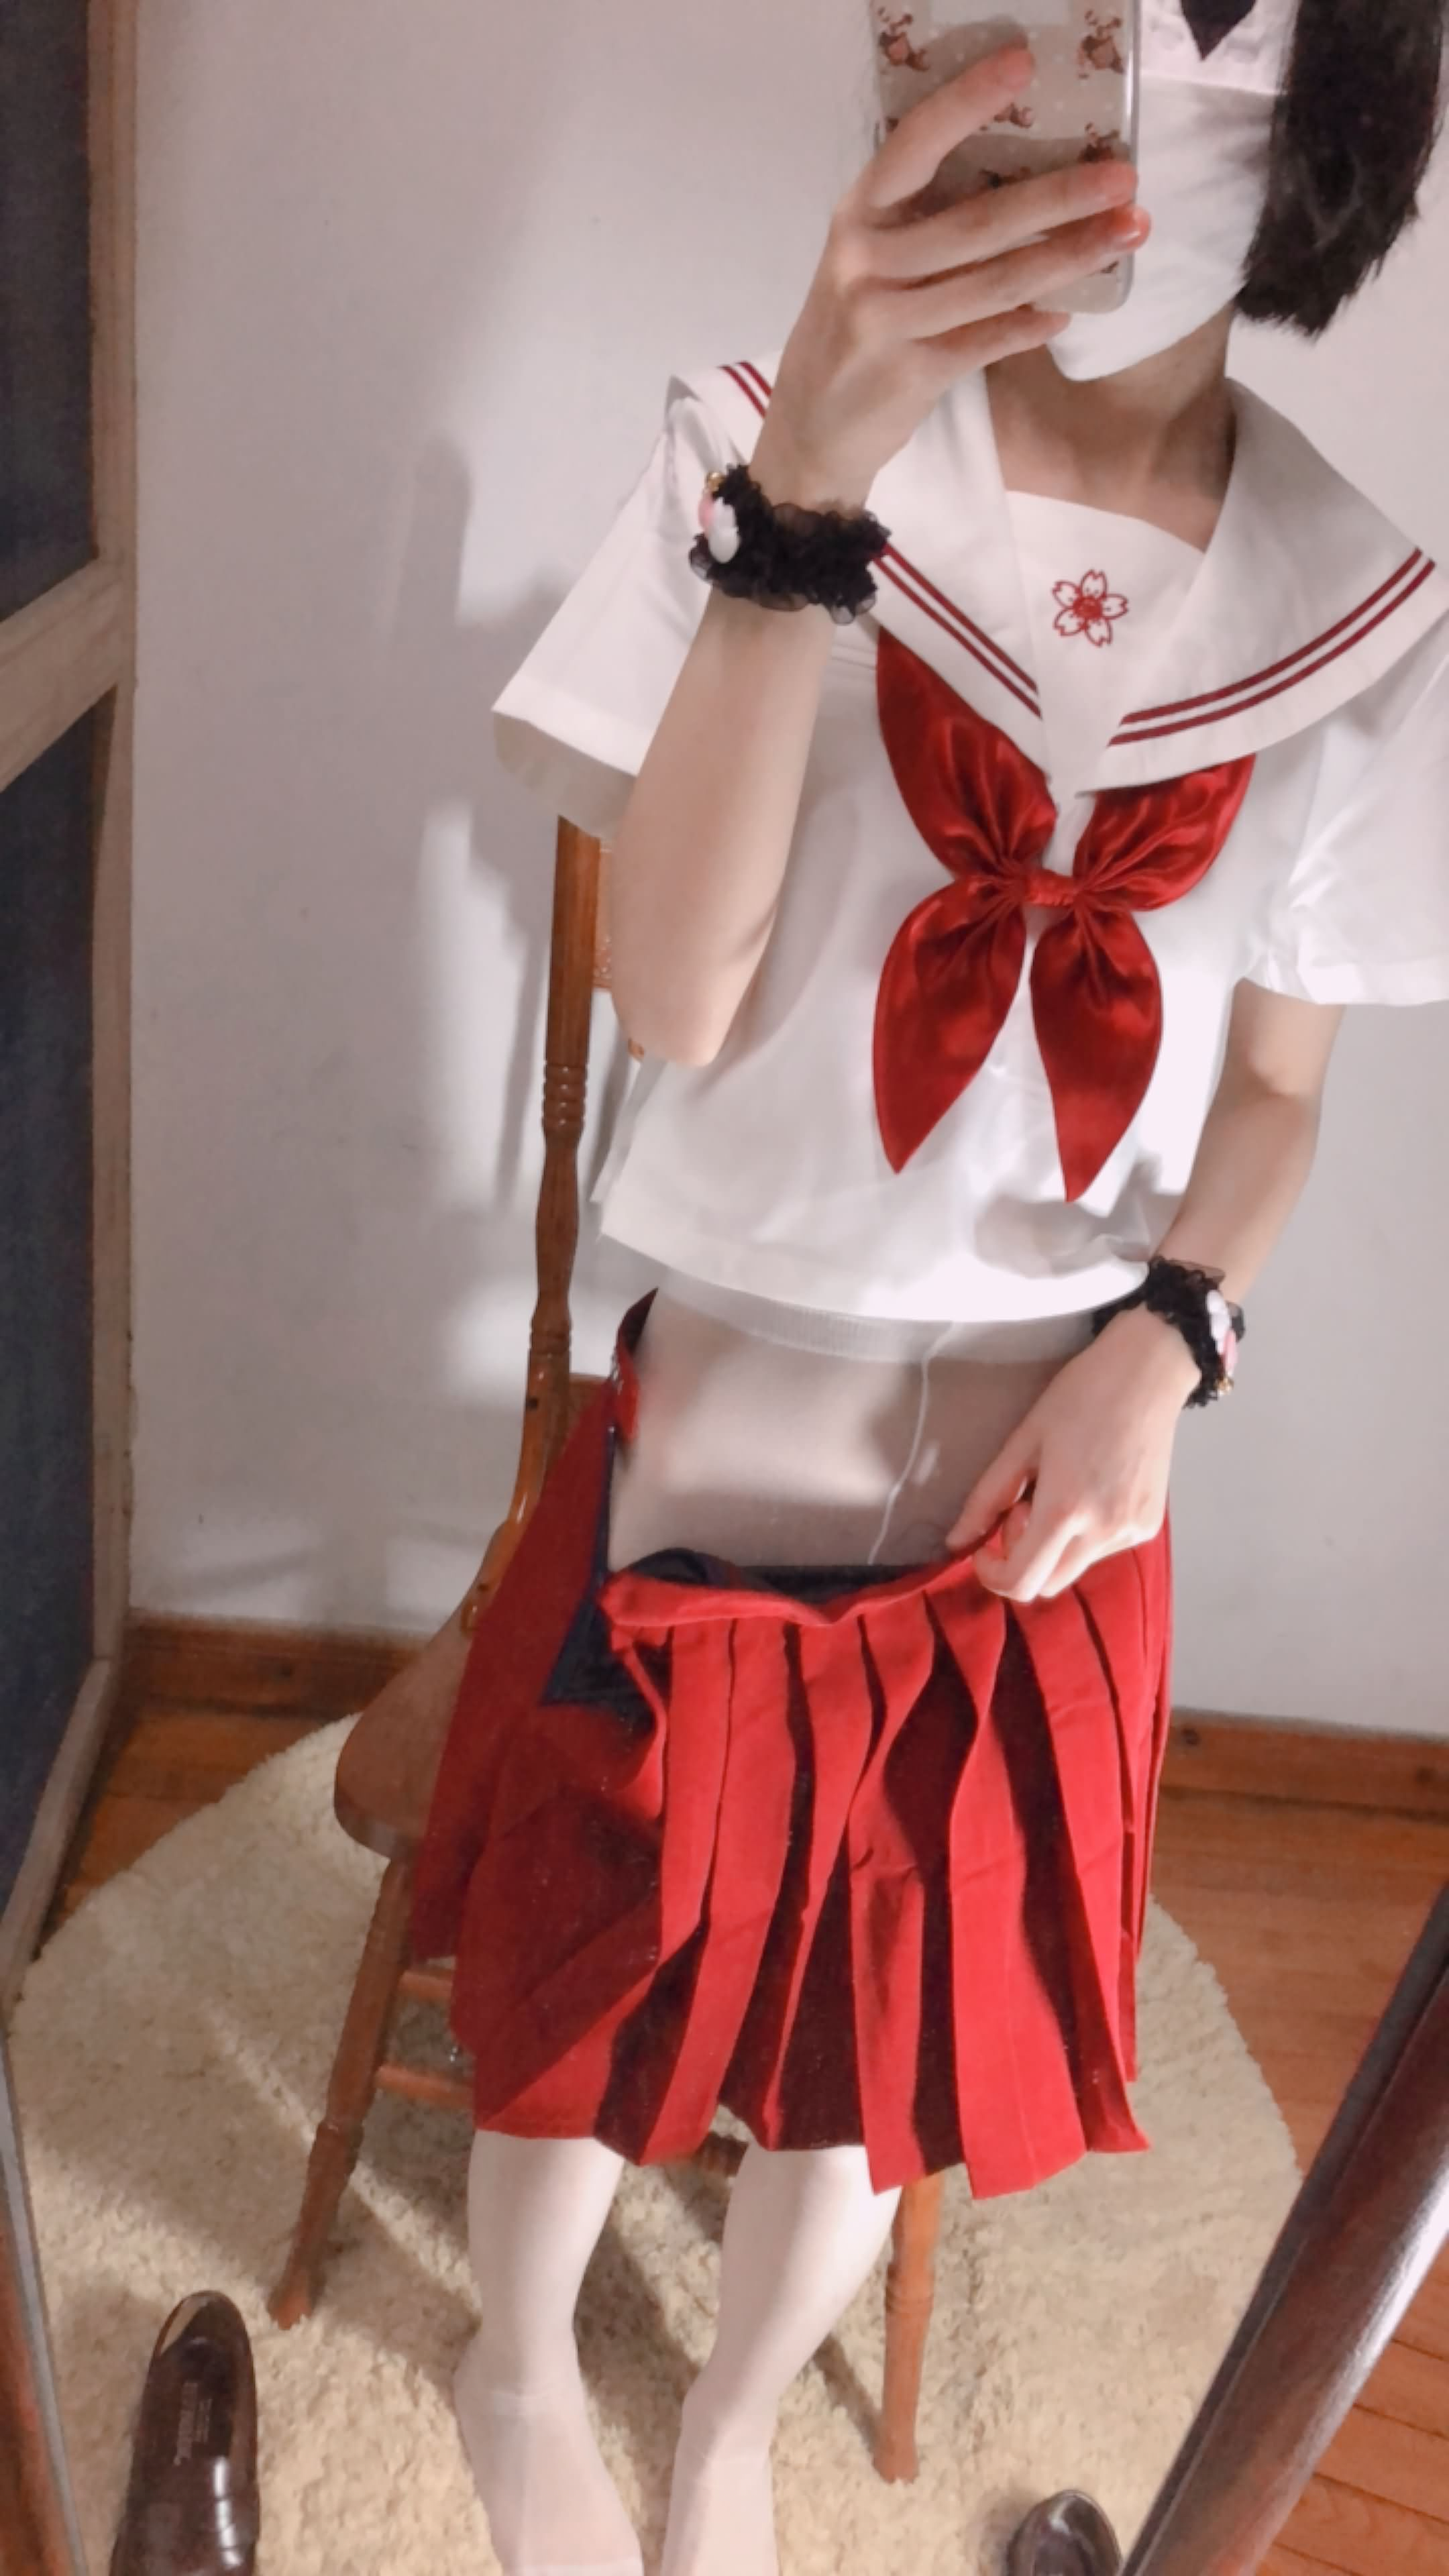 09 - Cosplay red JK uniform white stockings sweet pussy butt 小结巴-红色jk制服白丝 95P